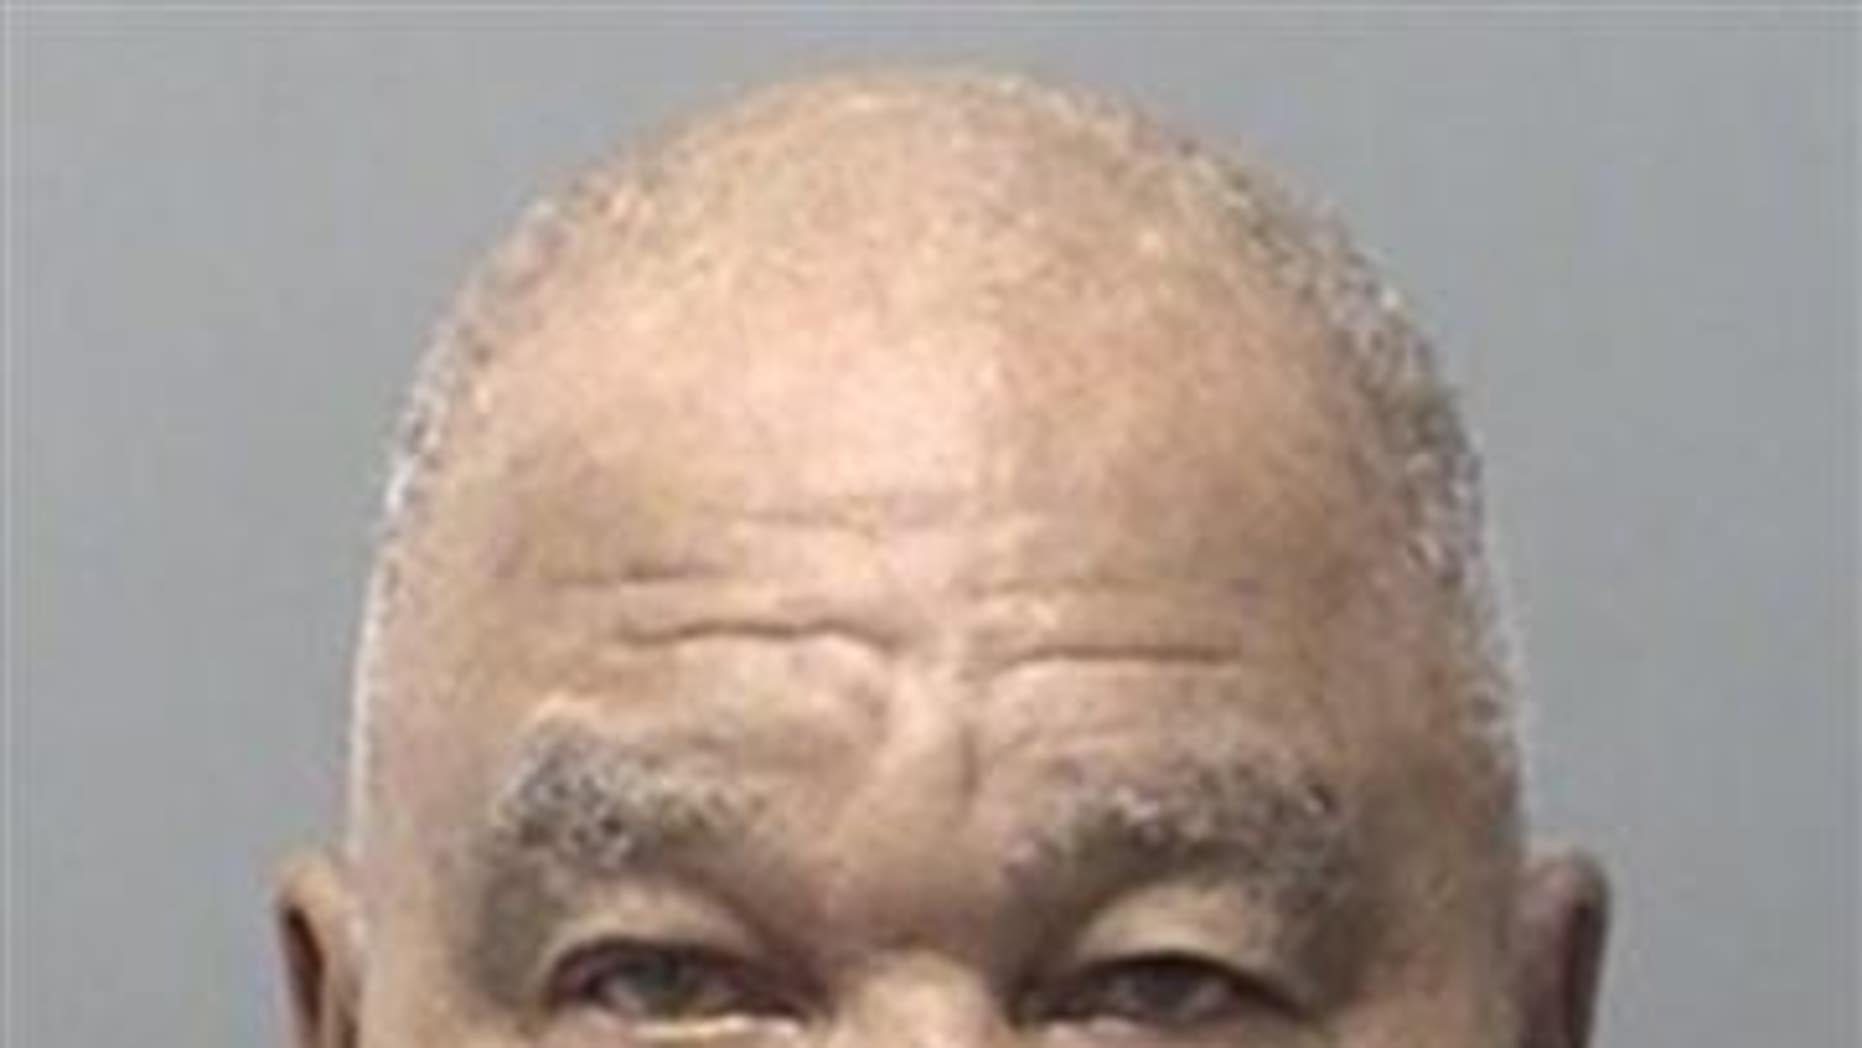 Samuel Little may be linked to more than 90 cold case homicides across the country, police said.